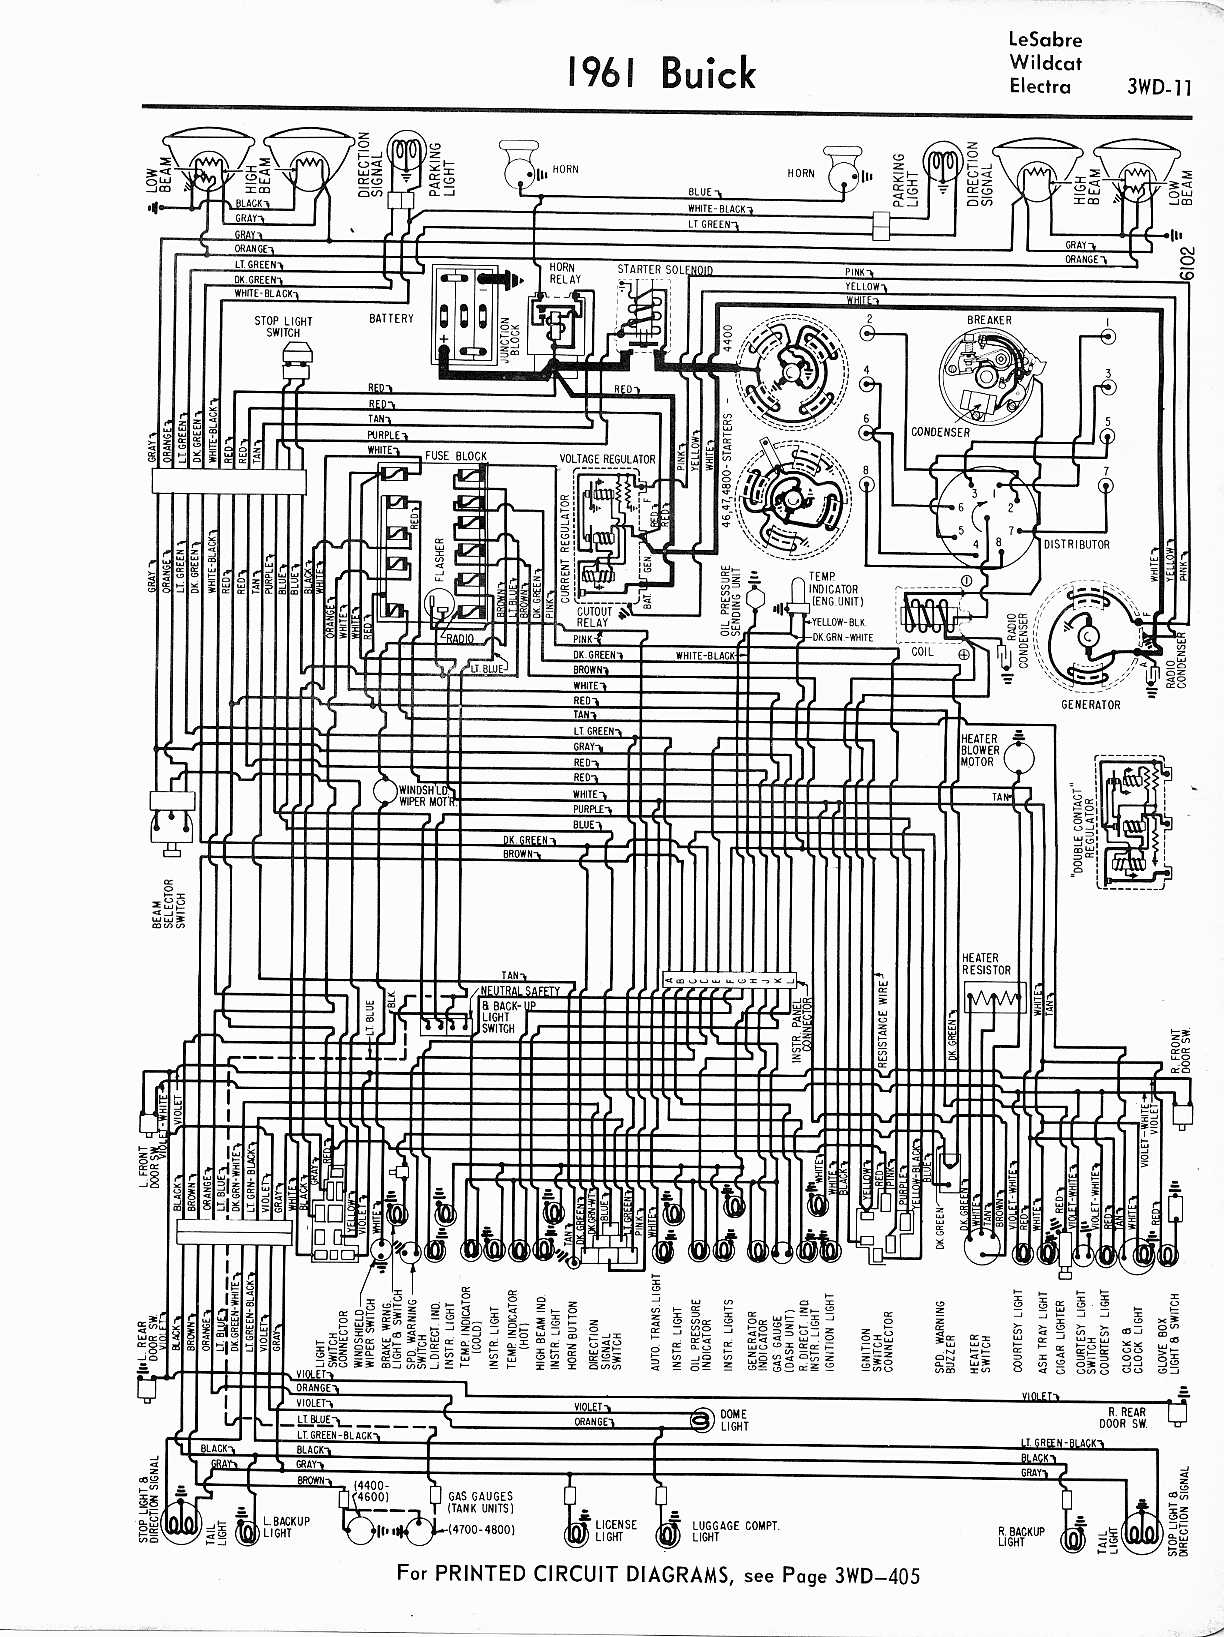 MWireBuic65_3WD 011 buick wiring diagrams 1957 1965 1999 buick century wiring diagram at reclaimingppi.co